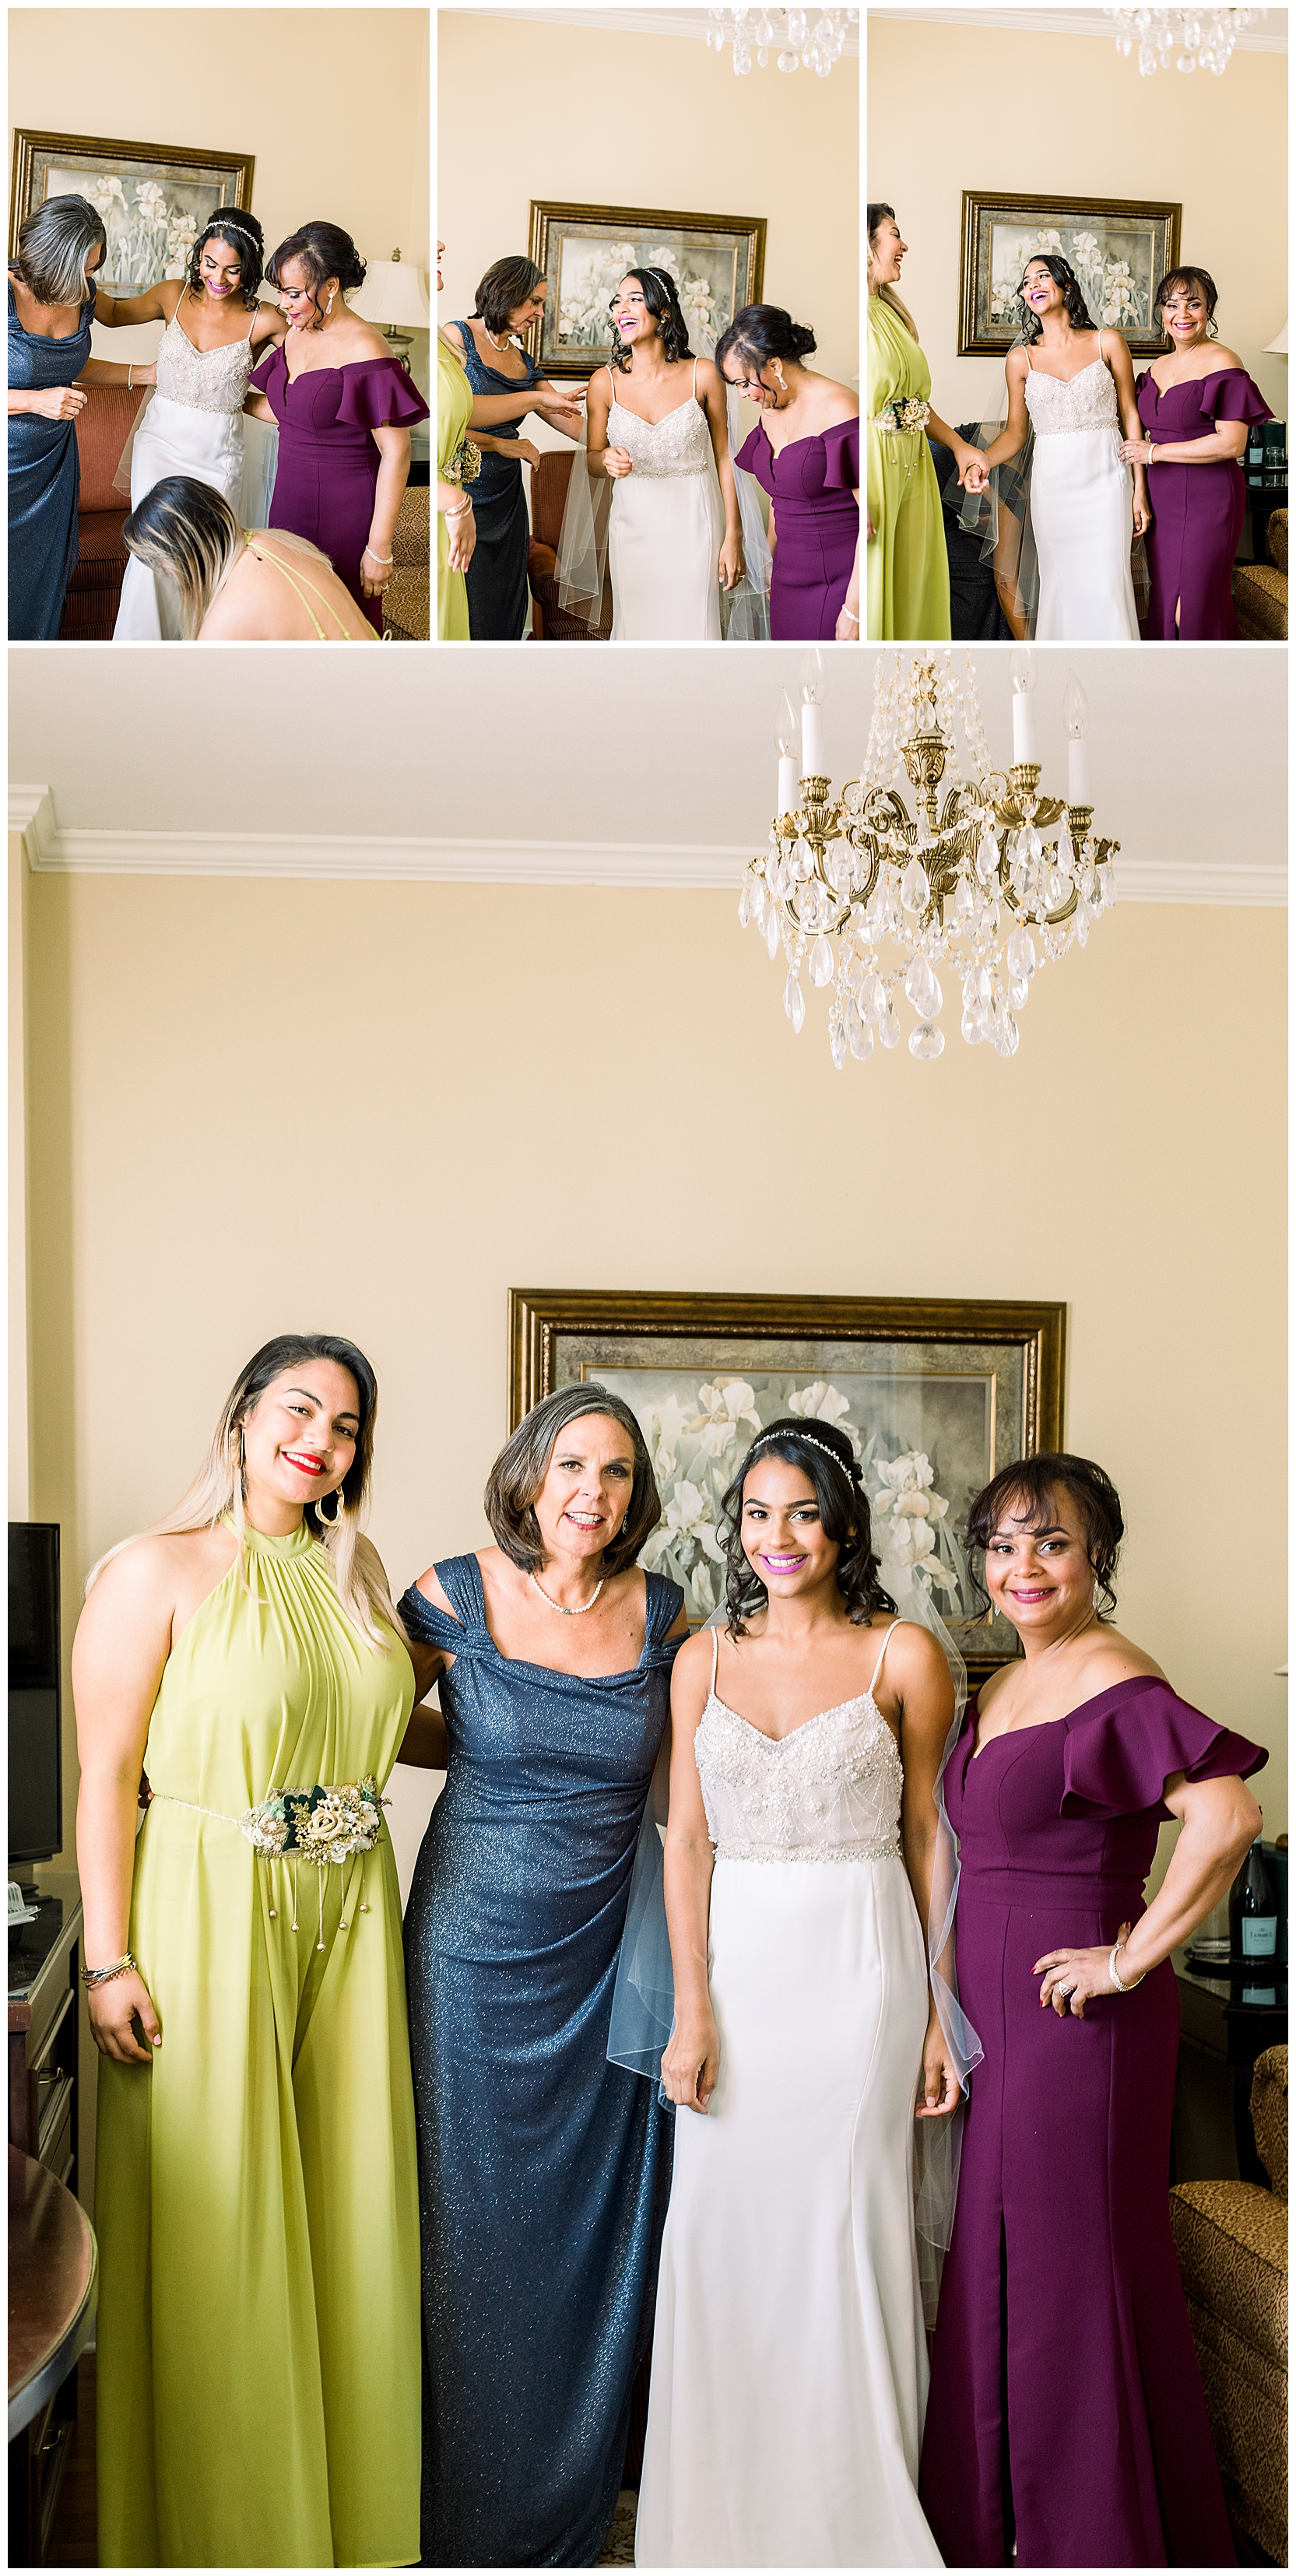 jessicafredericks_lakeland_tampa_wedding_purple_crazy hour_0011.jpg